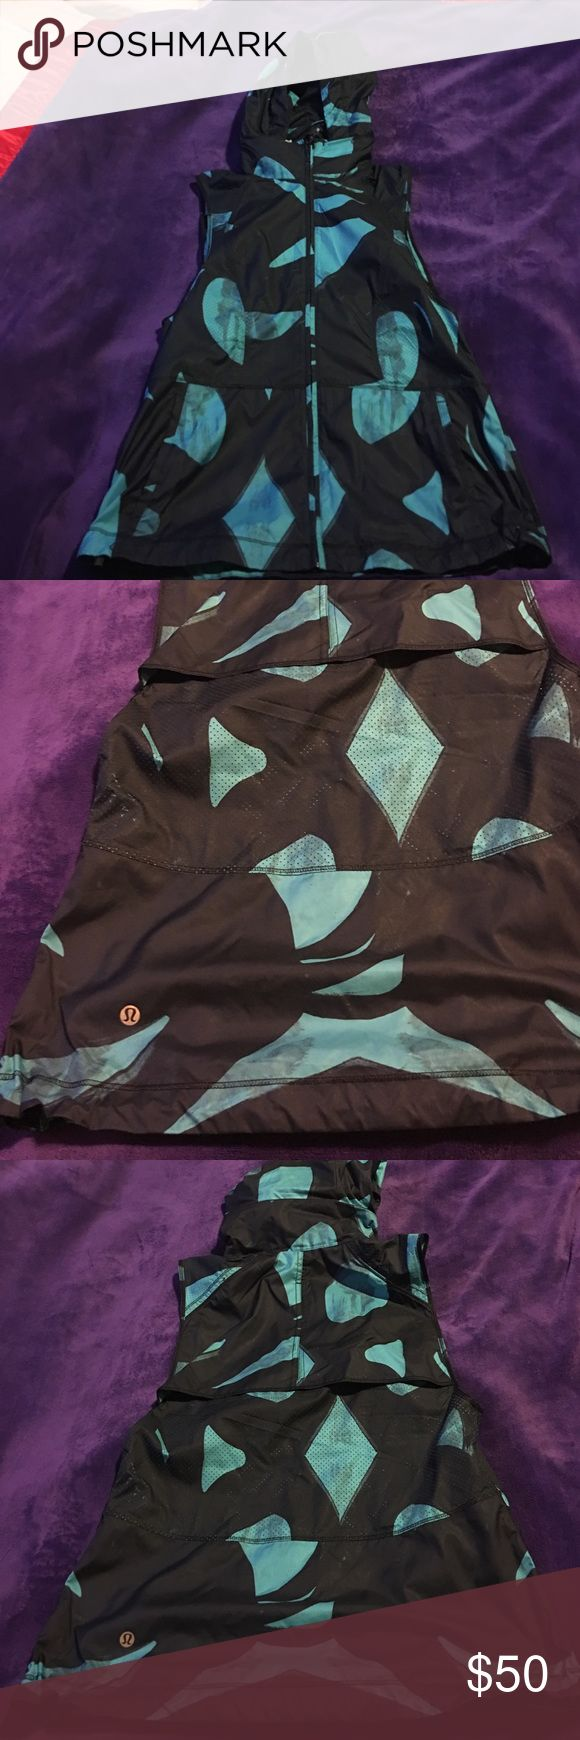 Lululemon vest Only worn once! Teal and navy blue with a print. Hide away zipper pouch to tuck hood in. Deep pockets for phone. Size 6 but fits more like a 4. lululemon athletica Jackets & Coats Vests